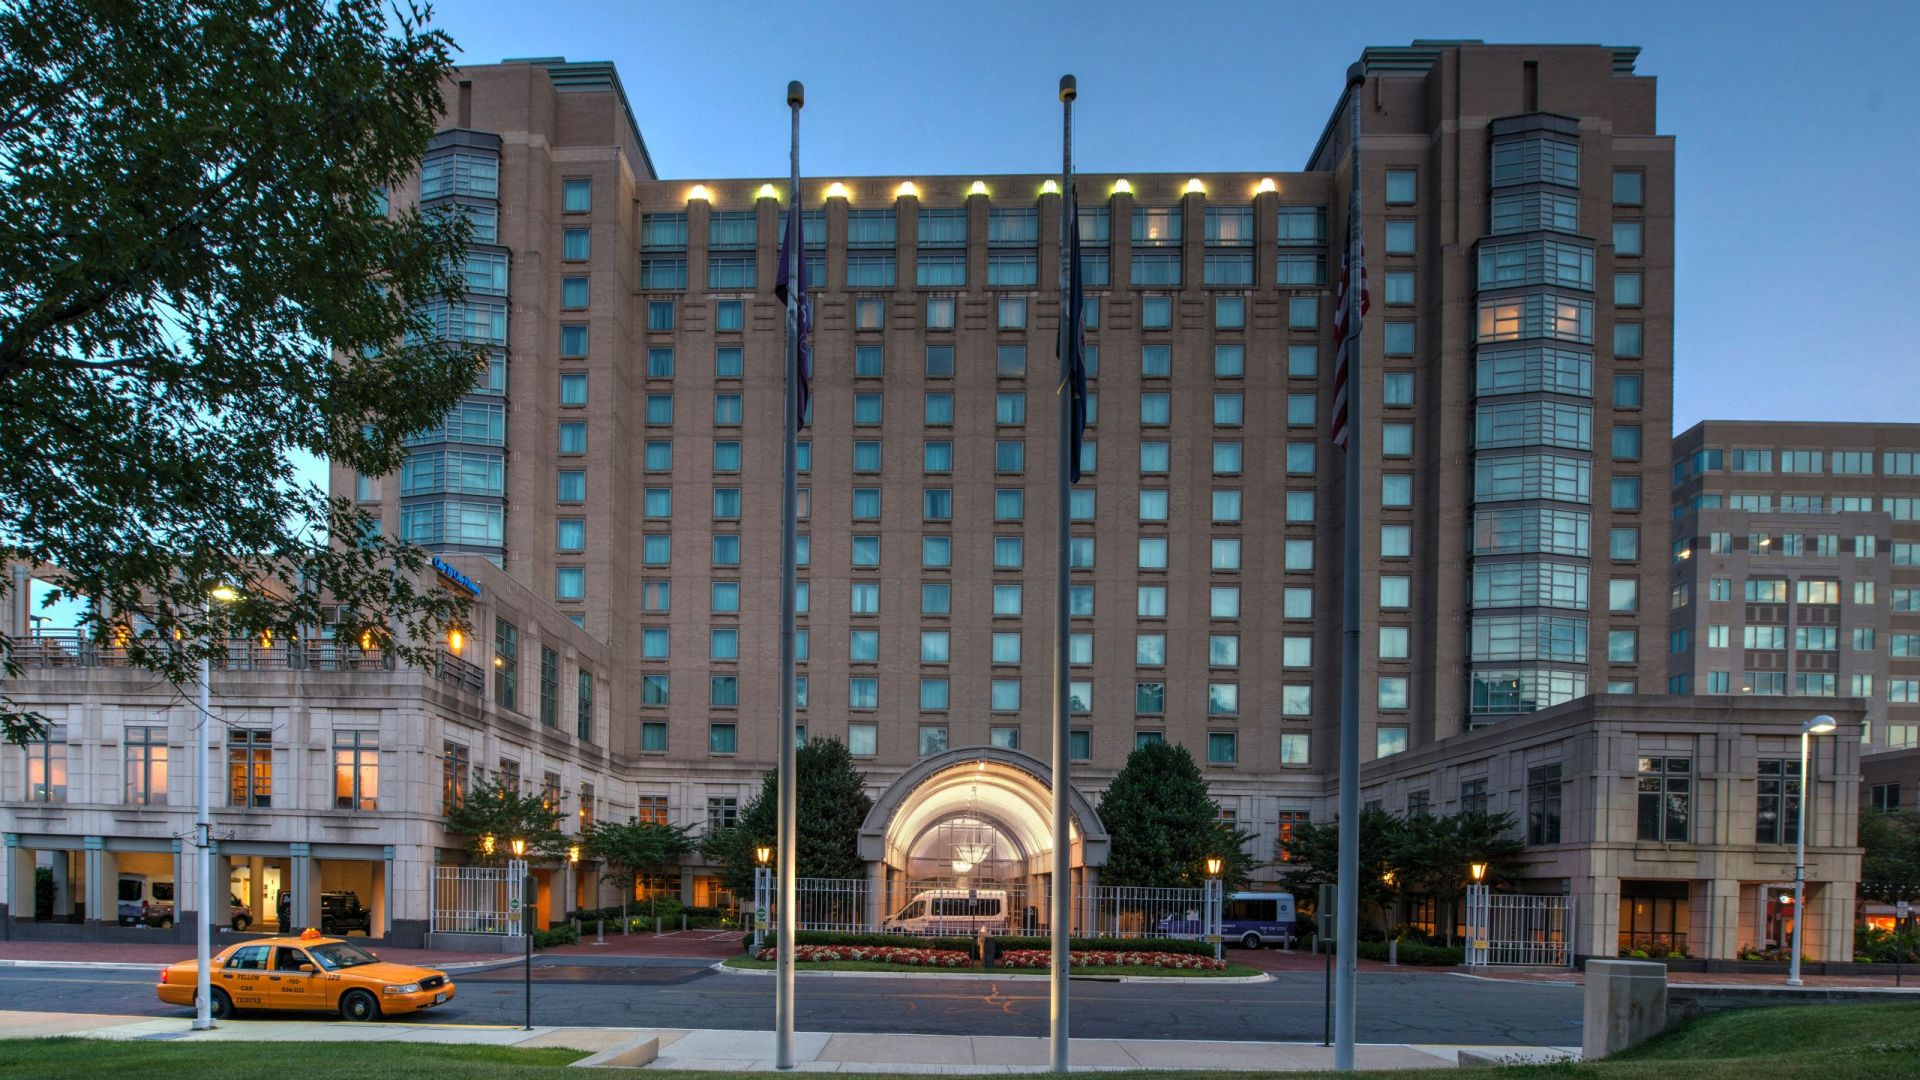 Hotel In Reston Town Center Northern Virginia Hyatt Regency Reston